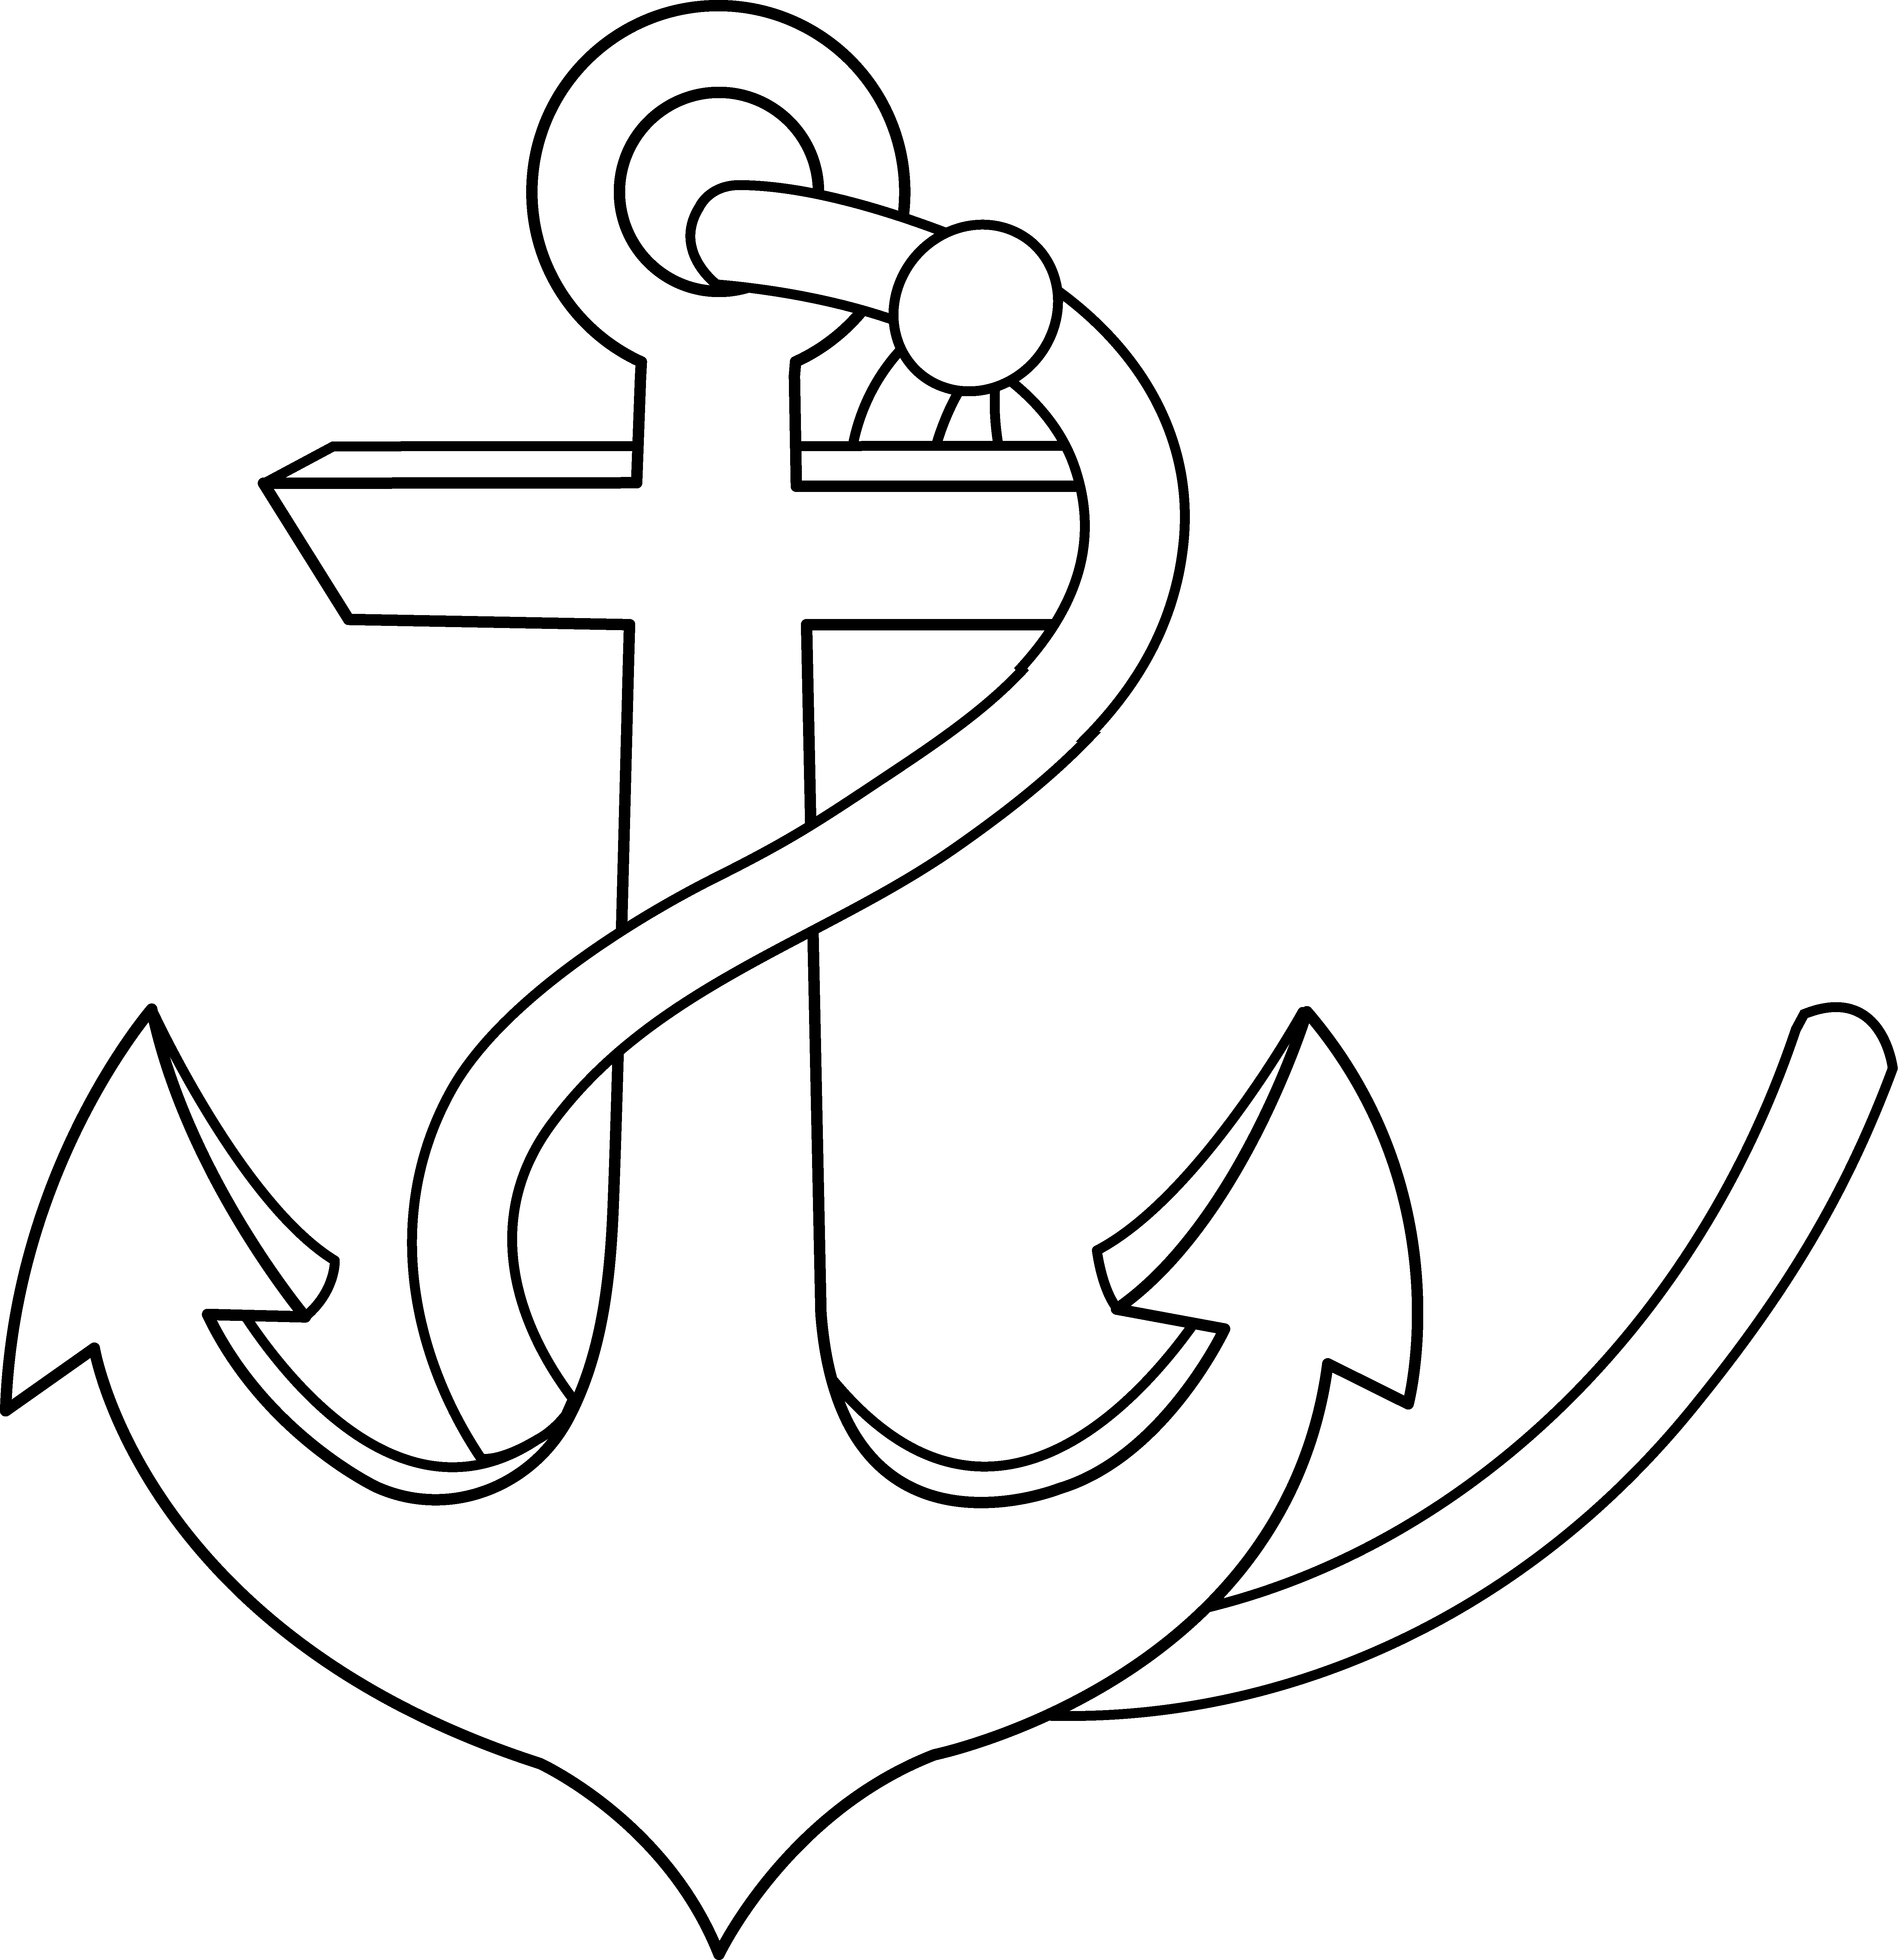 Free Boat Rope Cliparts, Download Free Clip Art, Free Clip.